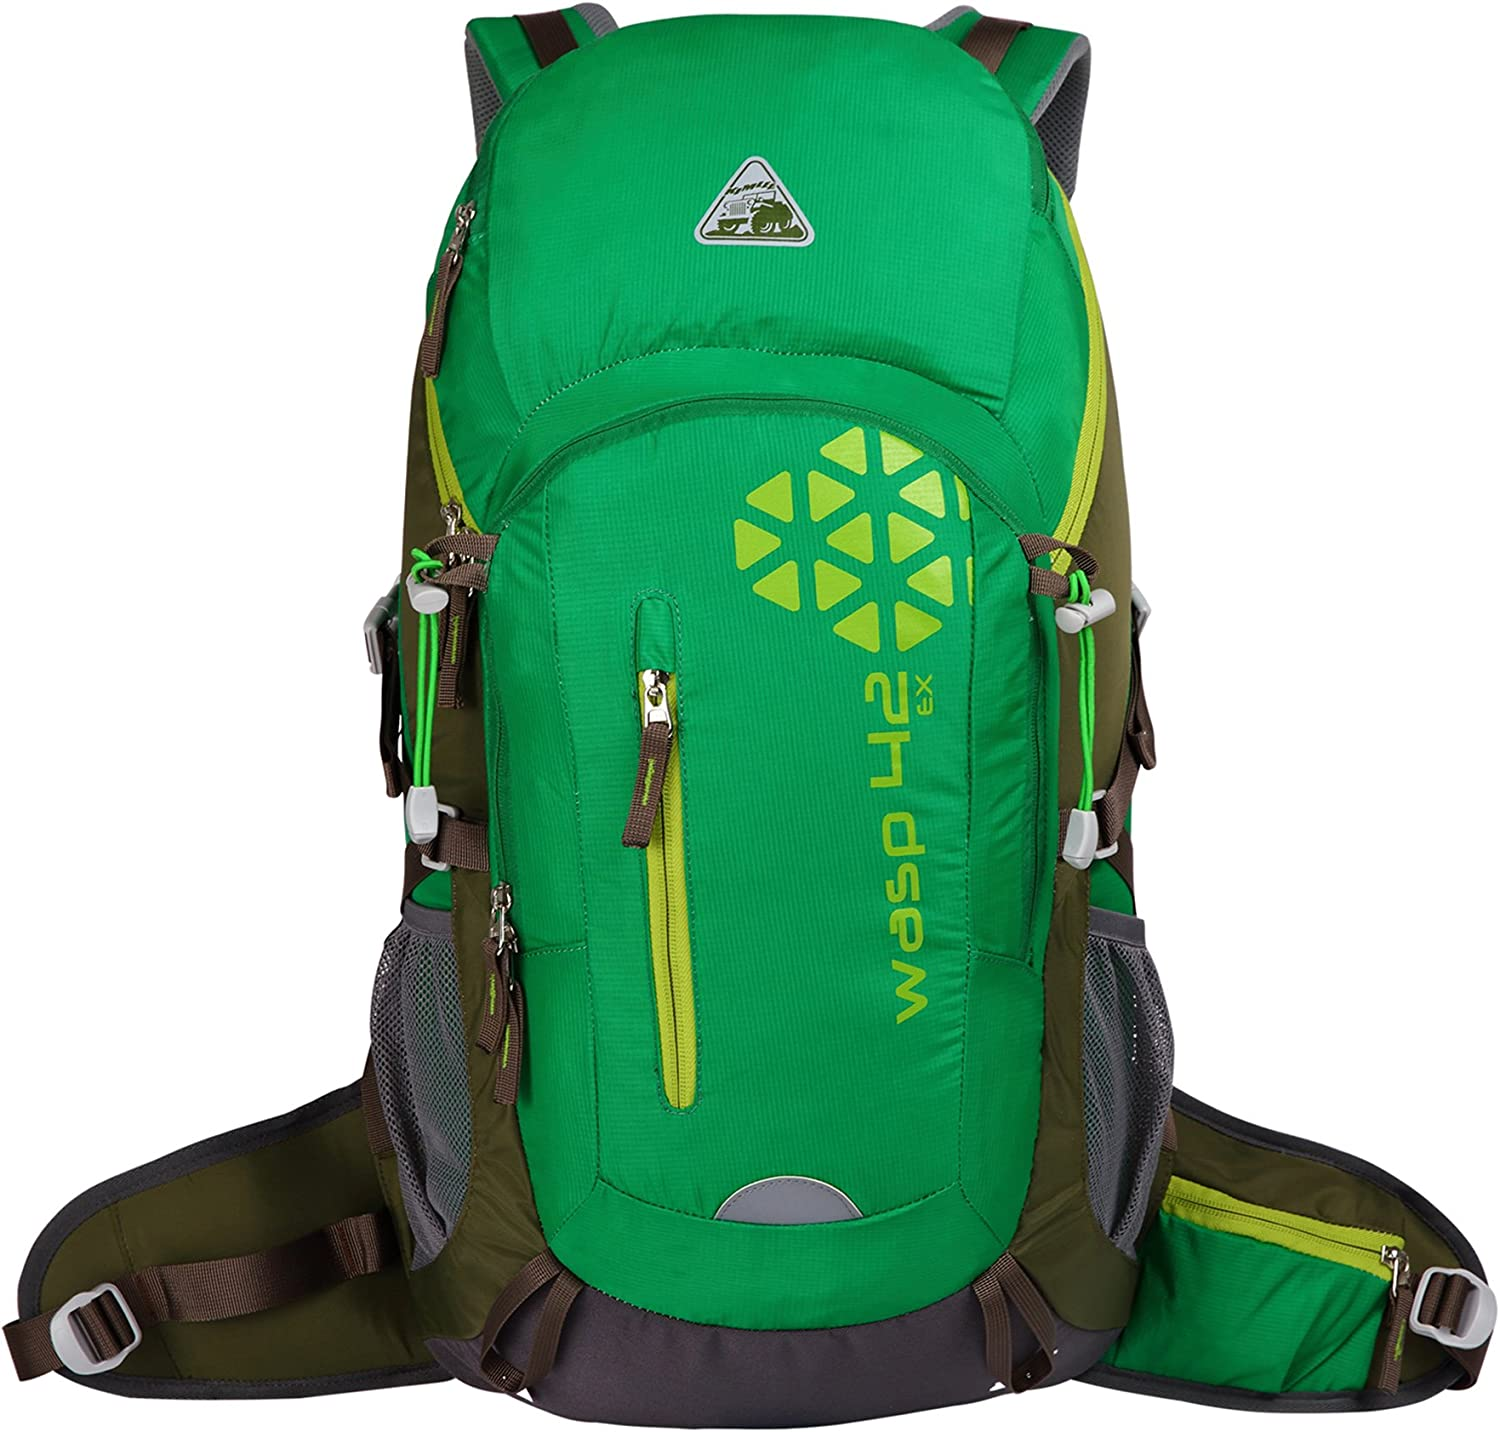 Kimlee Internal Frame Pack Hiking Daypack Camping Backpack Trekking Outdoor Gear